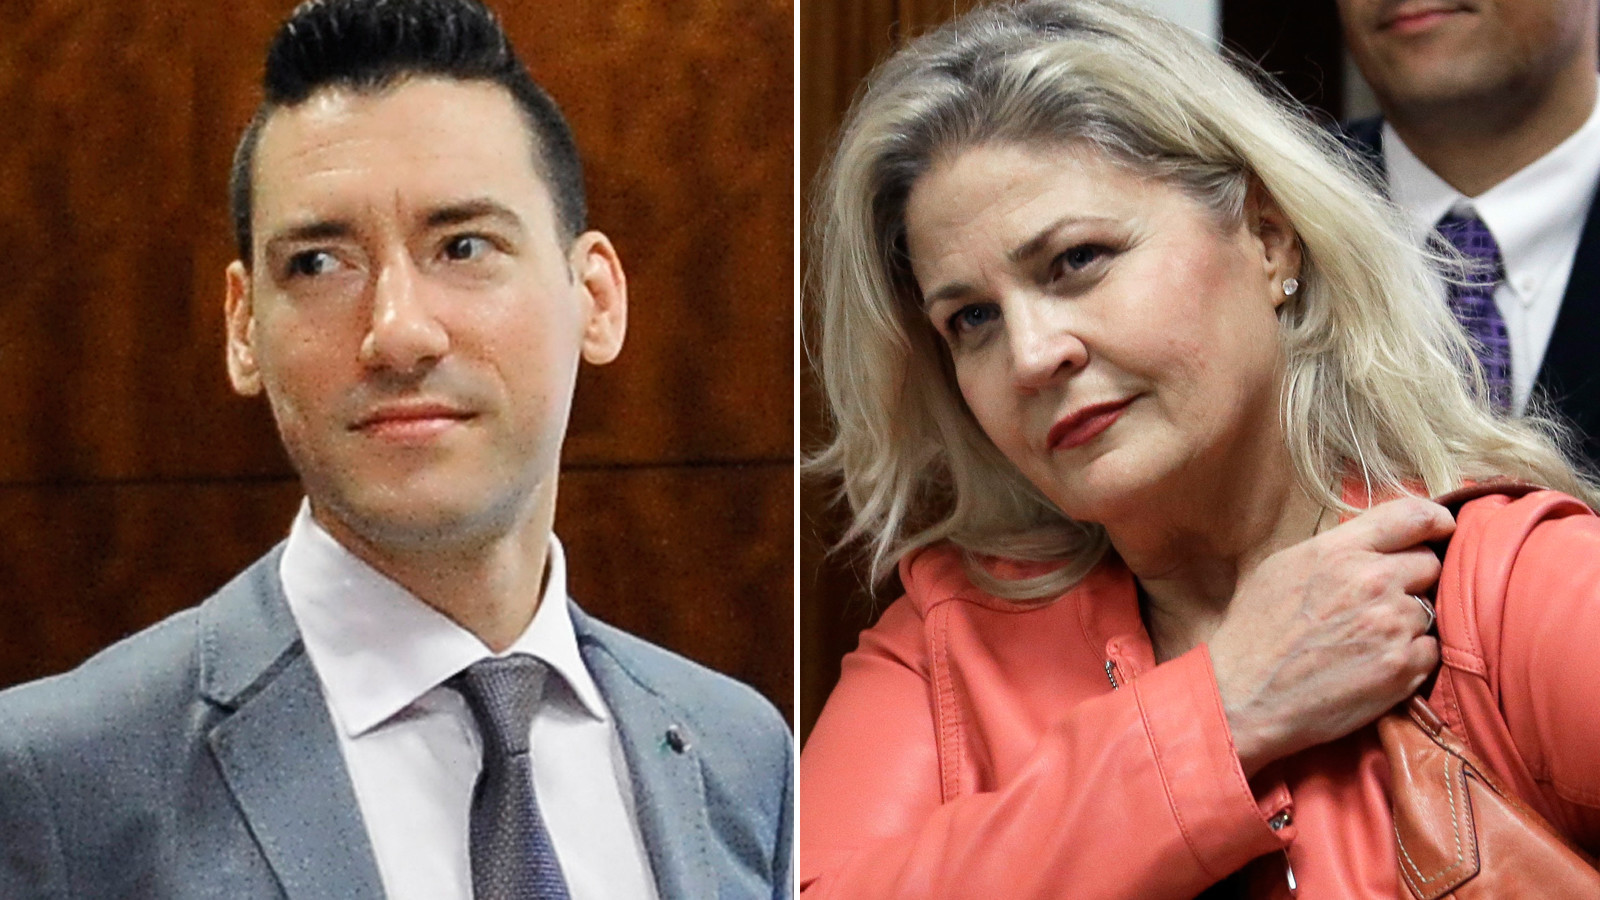 Antiabortion activists face 15 felony charges over undercover videos that targeted Planned Parenthood